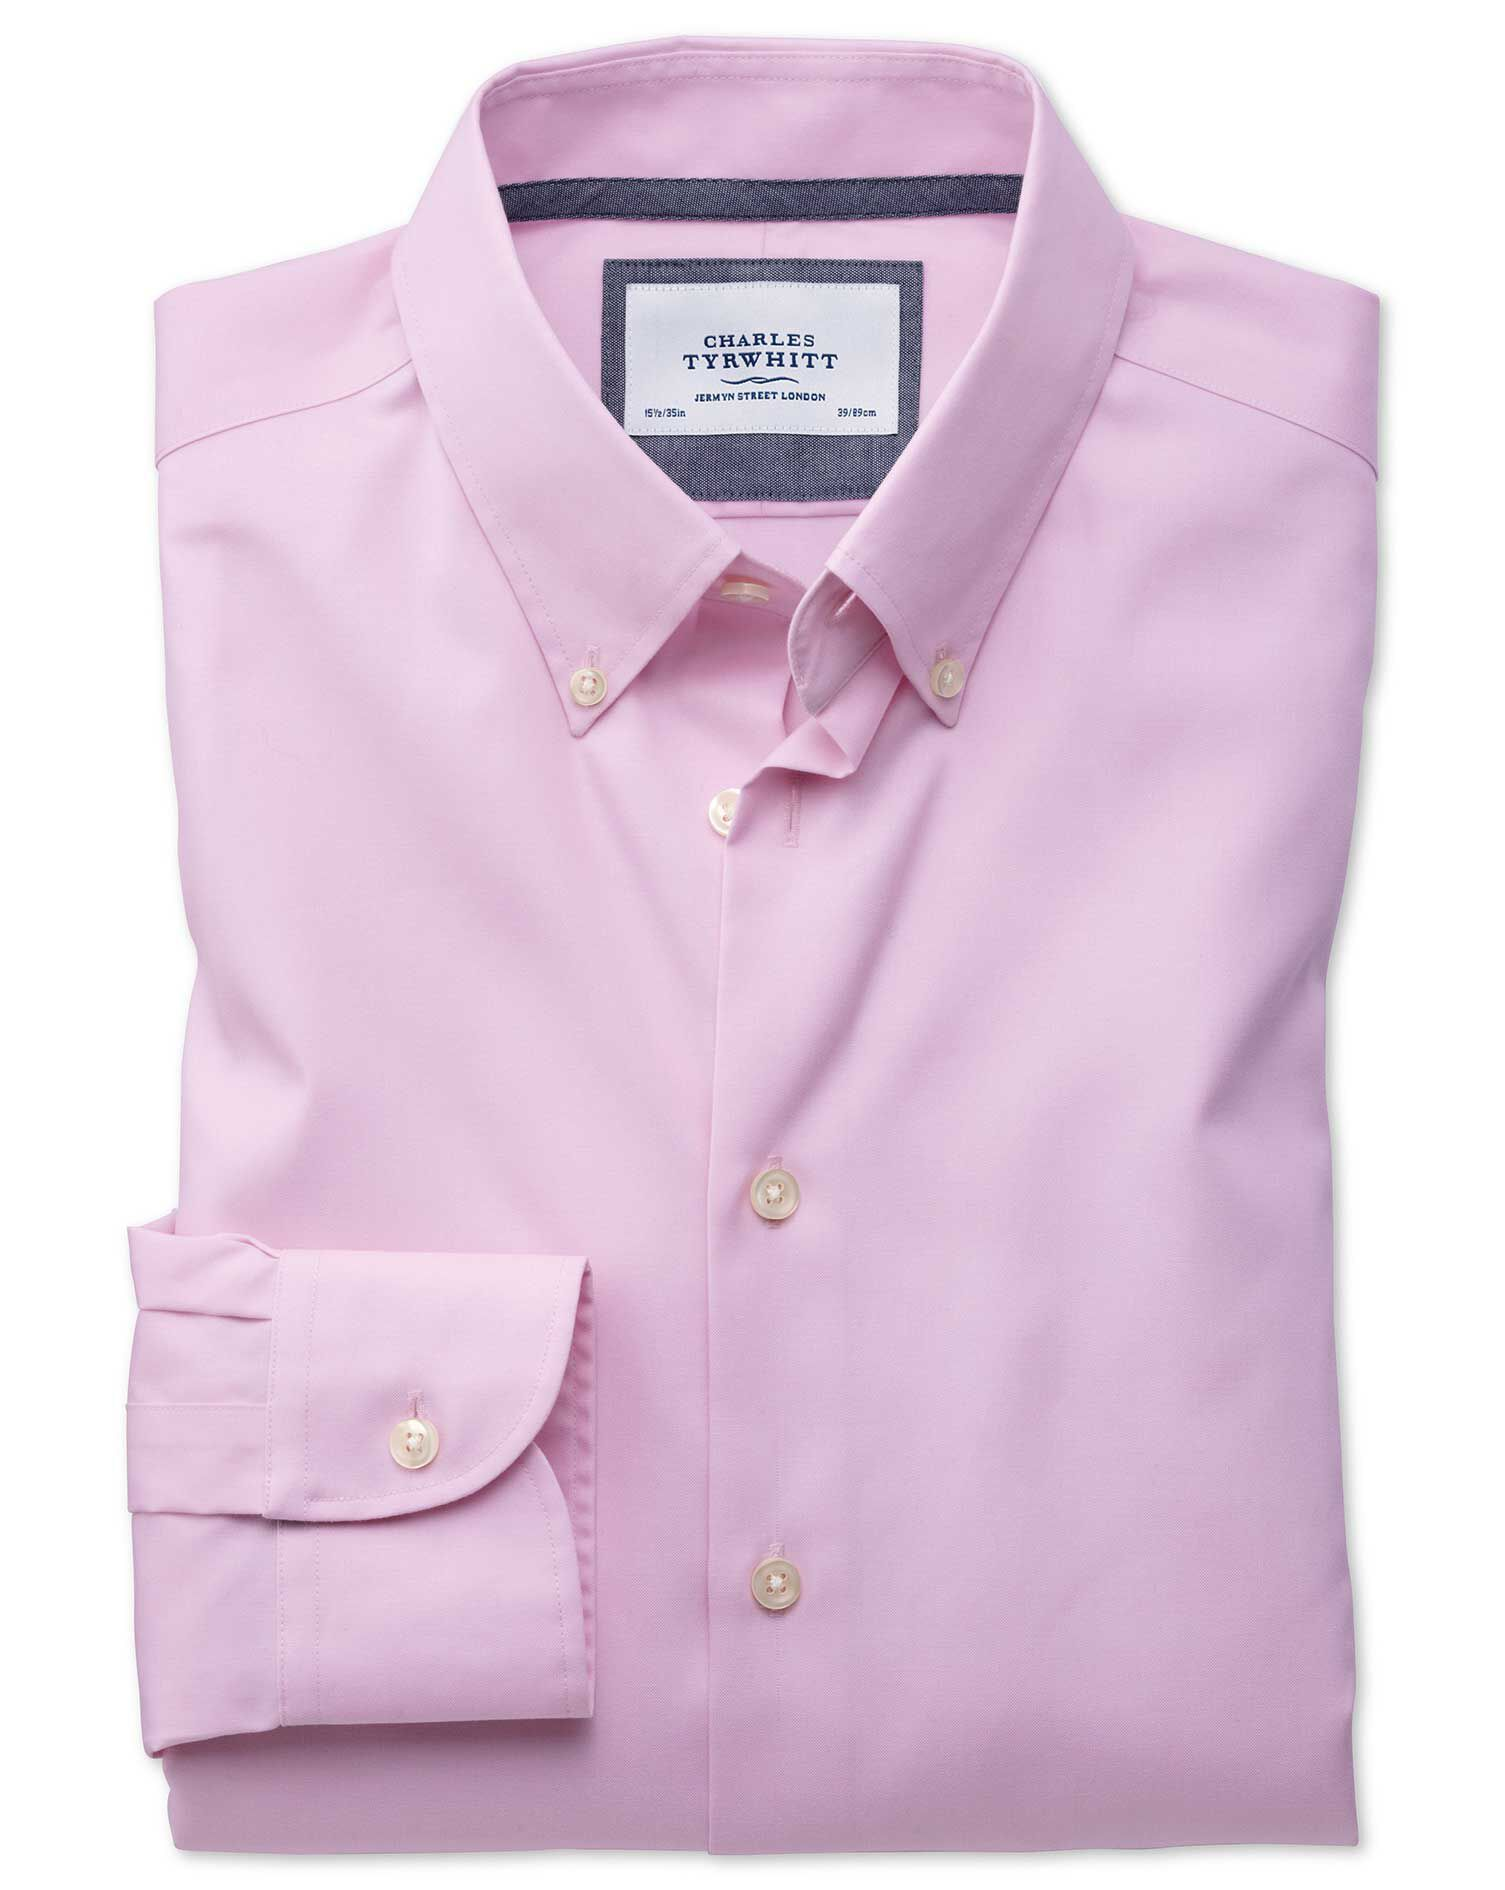 Charles Tyrwhitt Slim Fit Button-Down Collar Non-Iron Business Casual Light Pink Cotton Formal Shirt